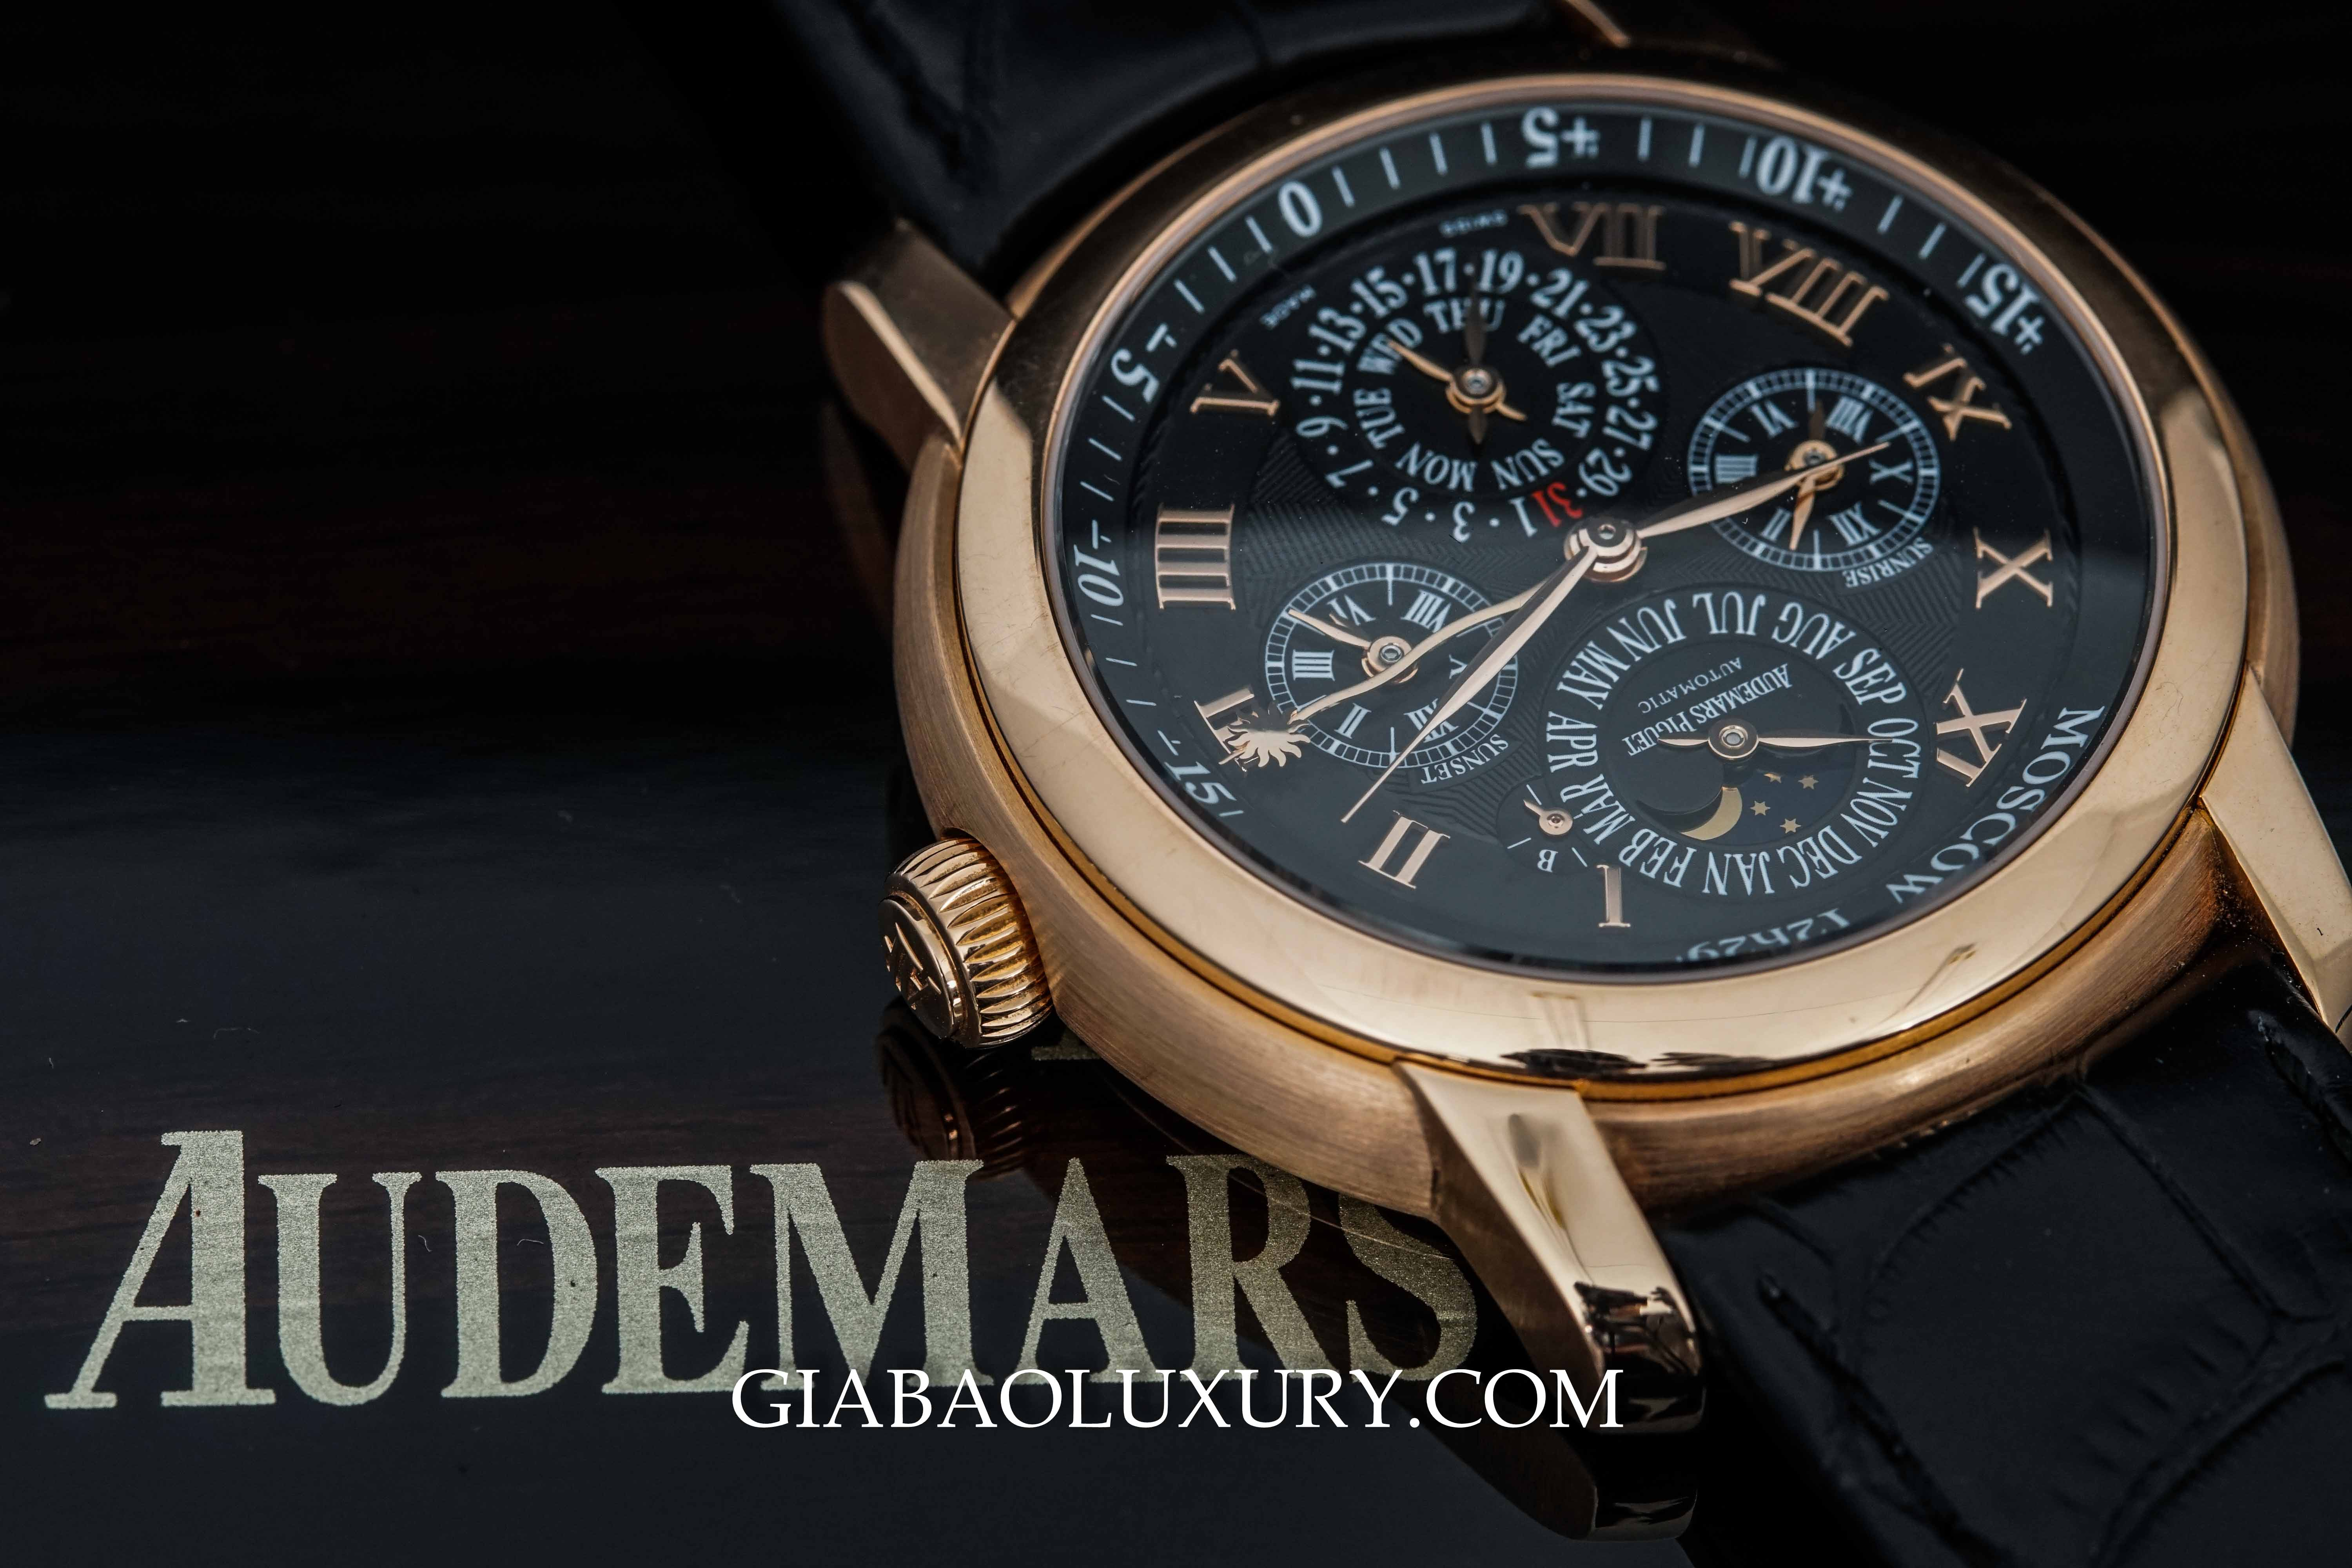 Review đồng hồ Audemars Piguet Jules Audemars Equation of Time